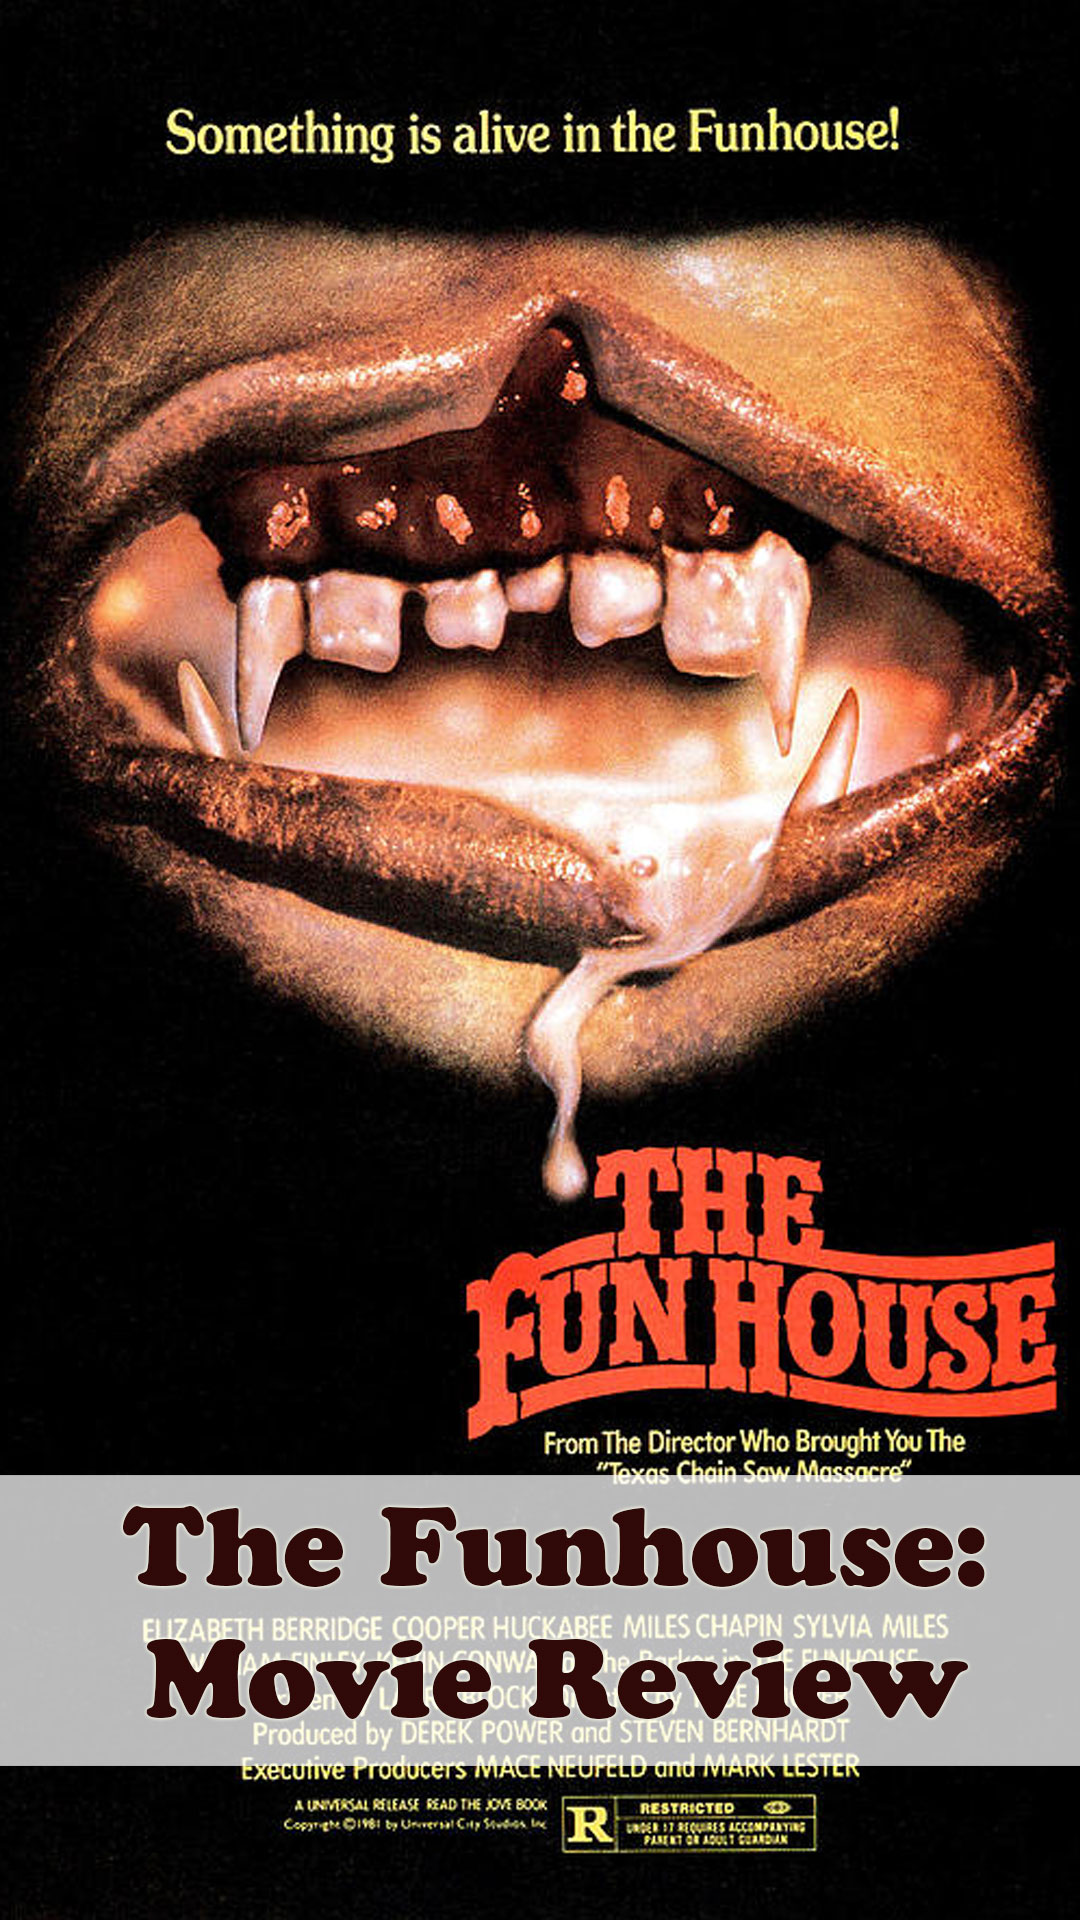 The Funhouse Film Review